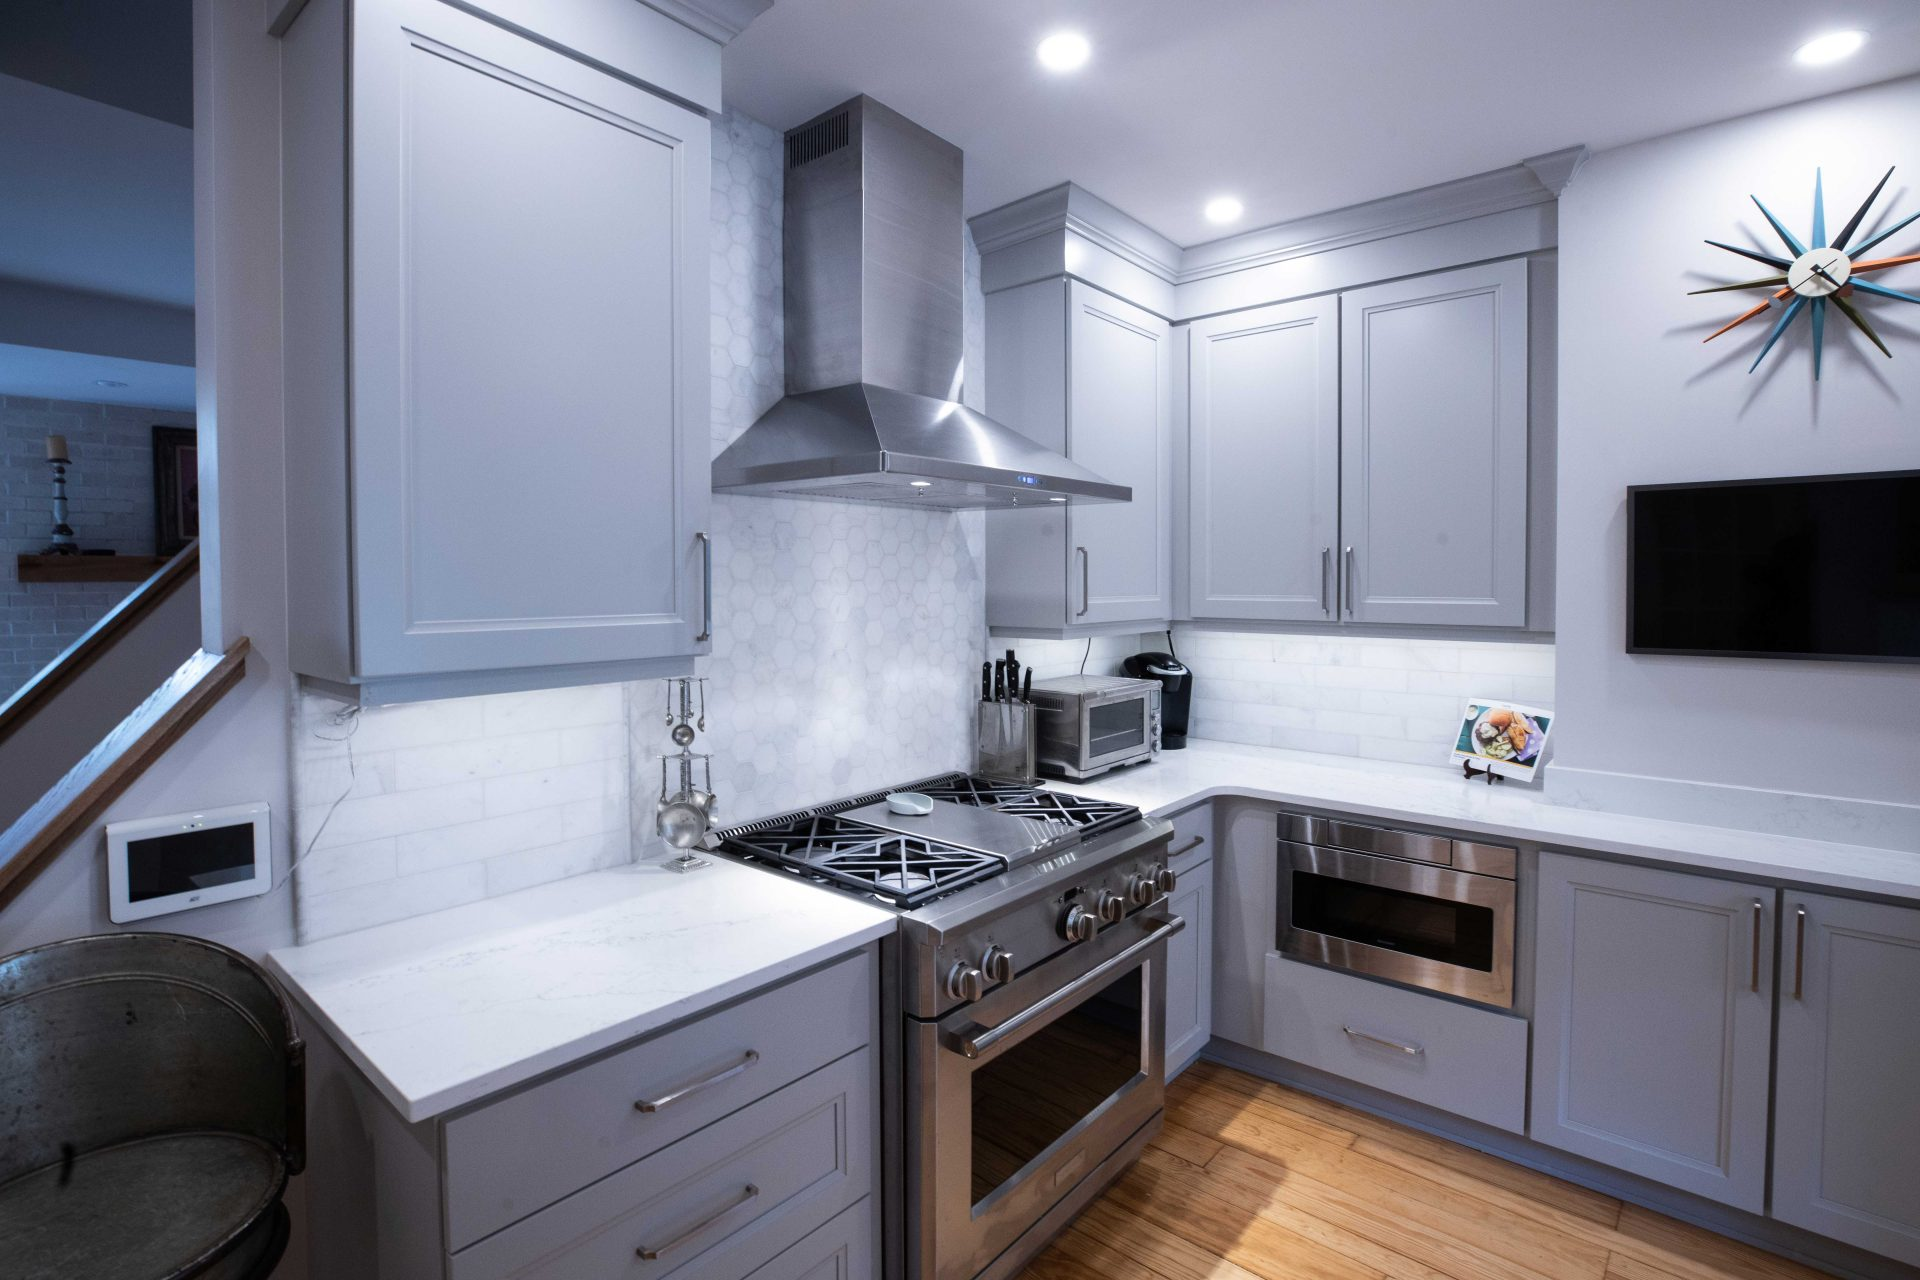 grey kitchen cabinets from Performance Kitchens & Home